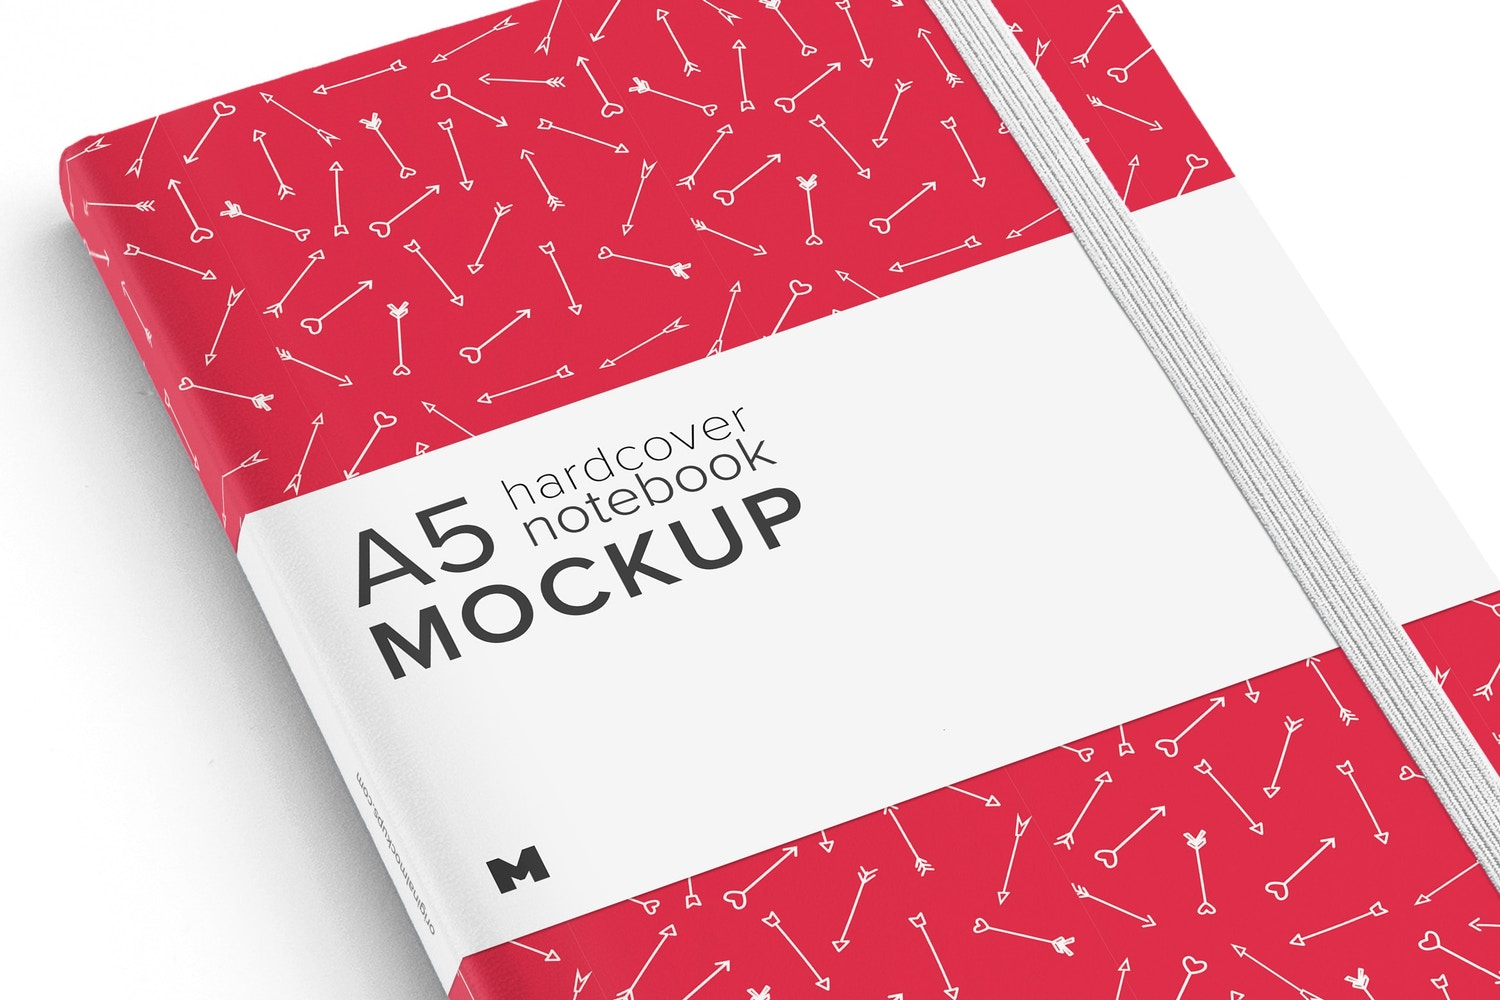 A5 Hardcover Notebook Mockup 01